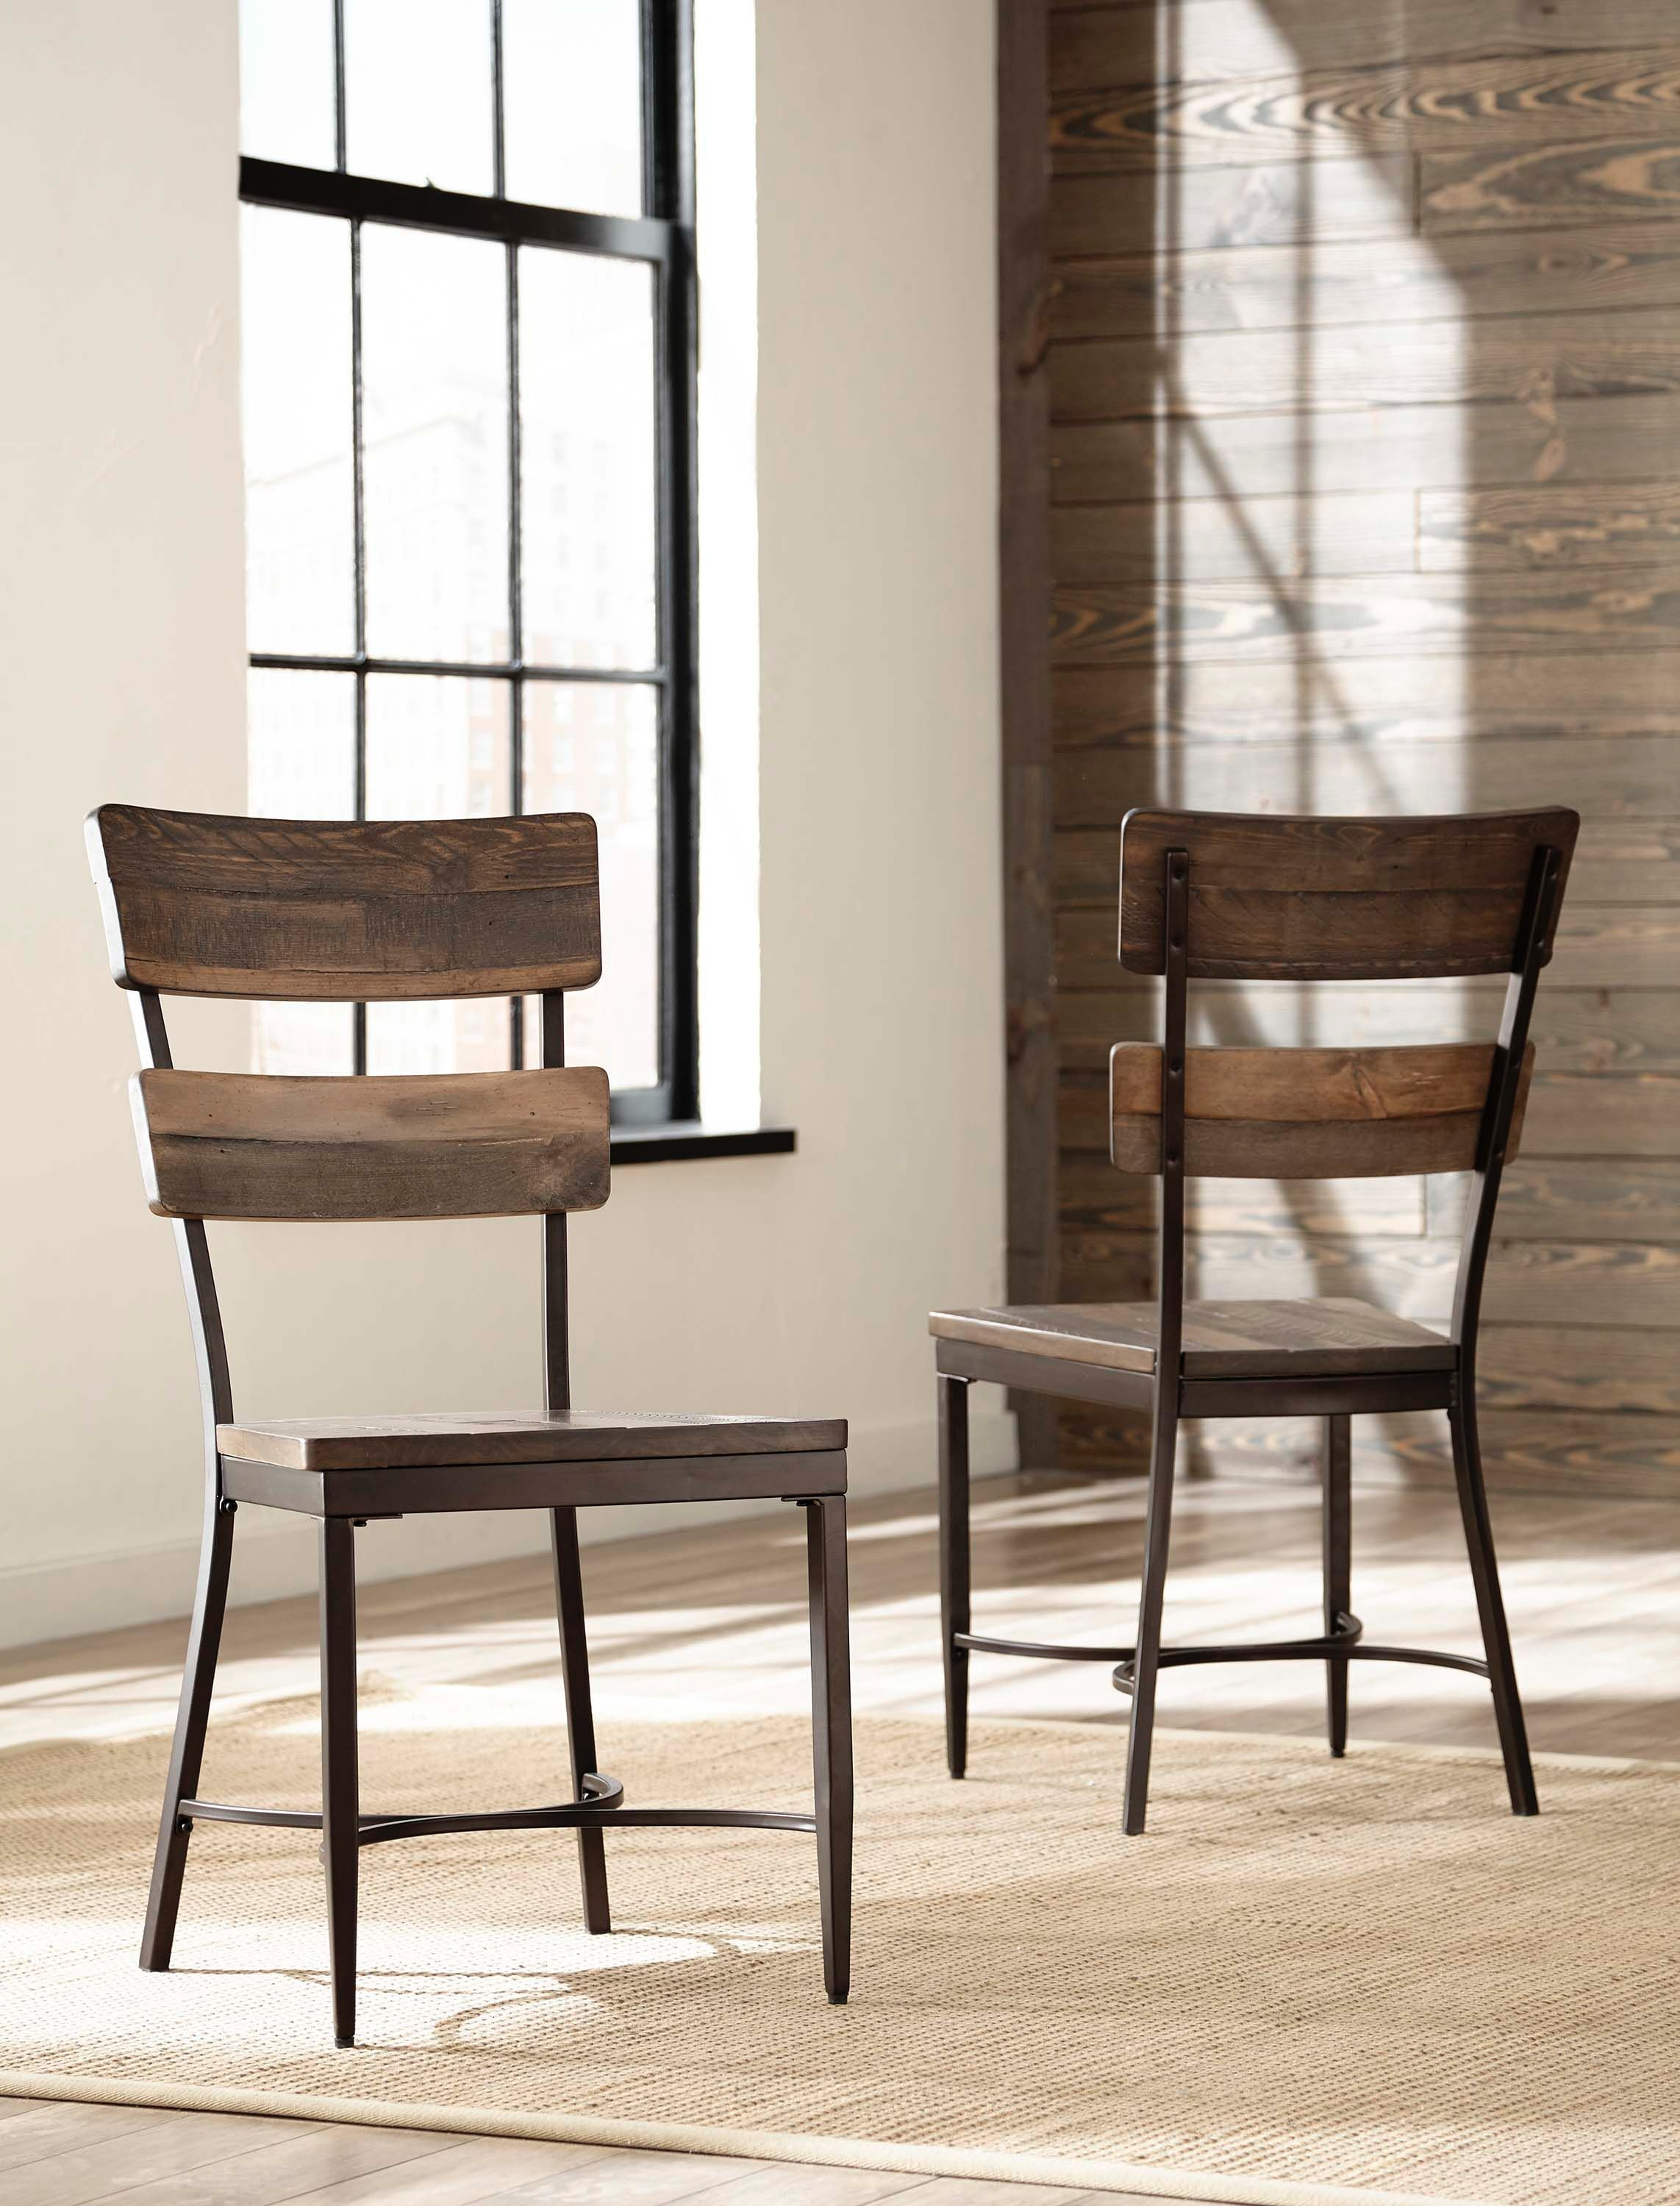 Hillsdale Furniture Jennings Dining Chair   Set Of 2 4022 802